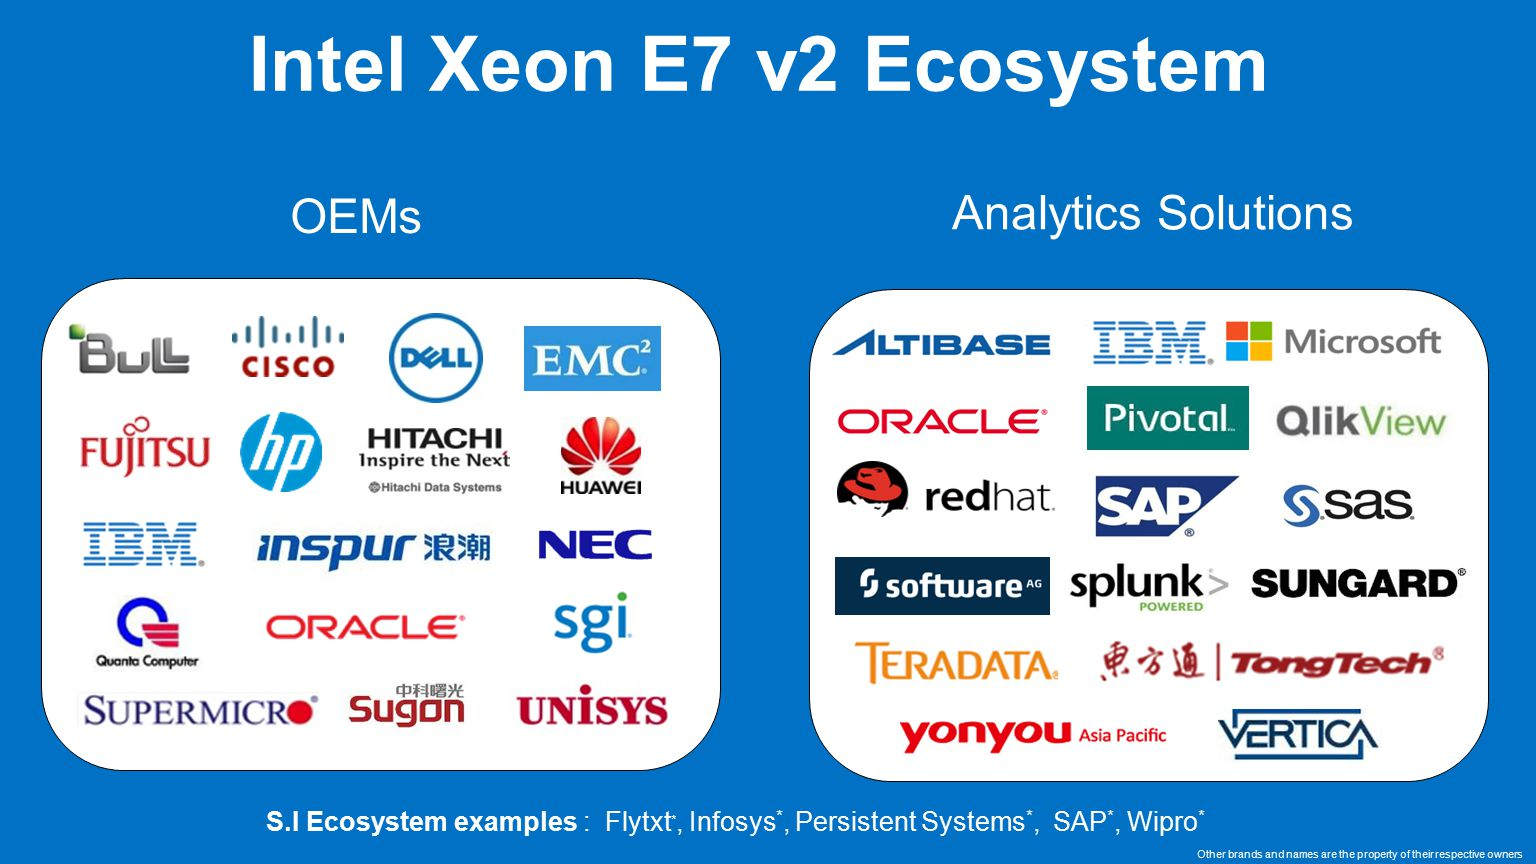 Intel Xeon E7 v2 Ecosystem OEMs Analytics Solutions Other brands and names are the property of their respective owners S.I Ecosystem examples : Flytxt *, Infosys *, Persistent Systems *, SAP *, Wipro *